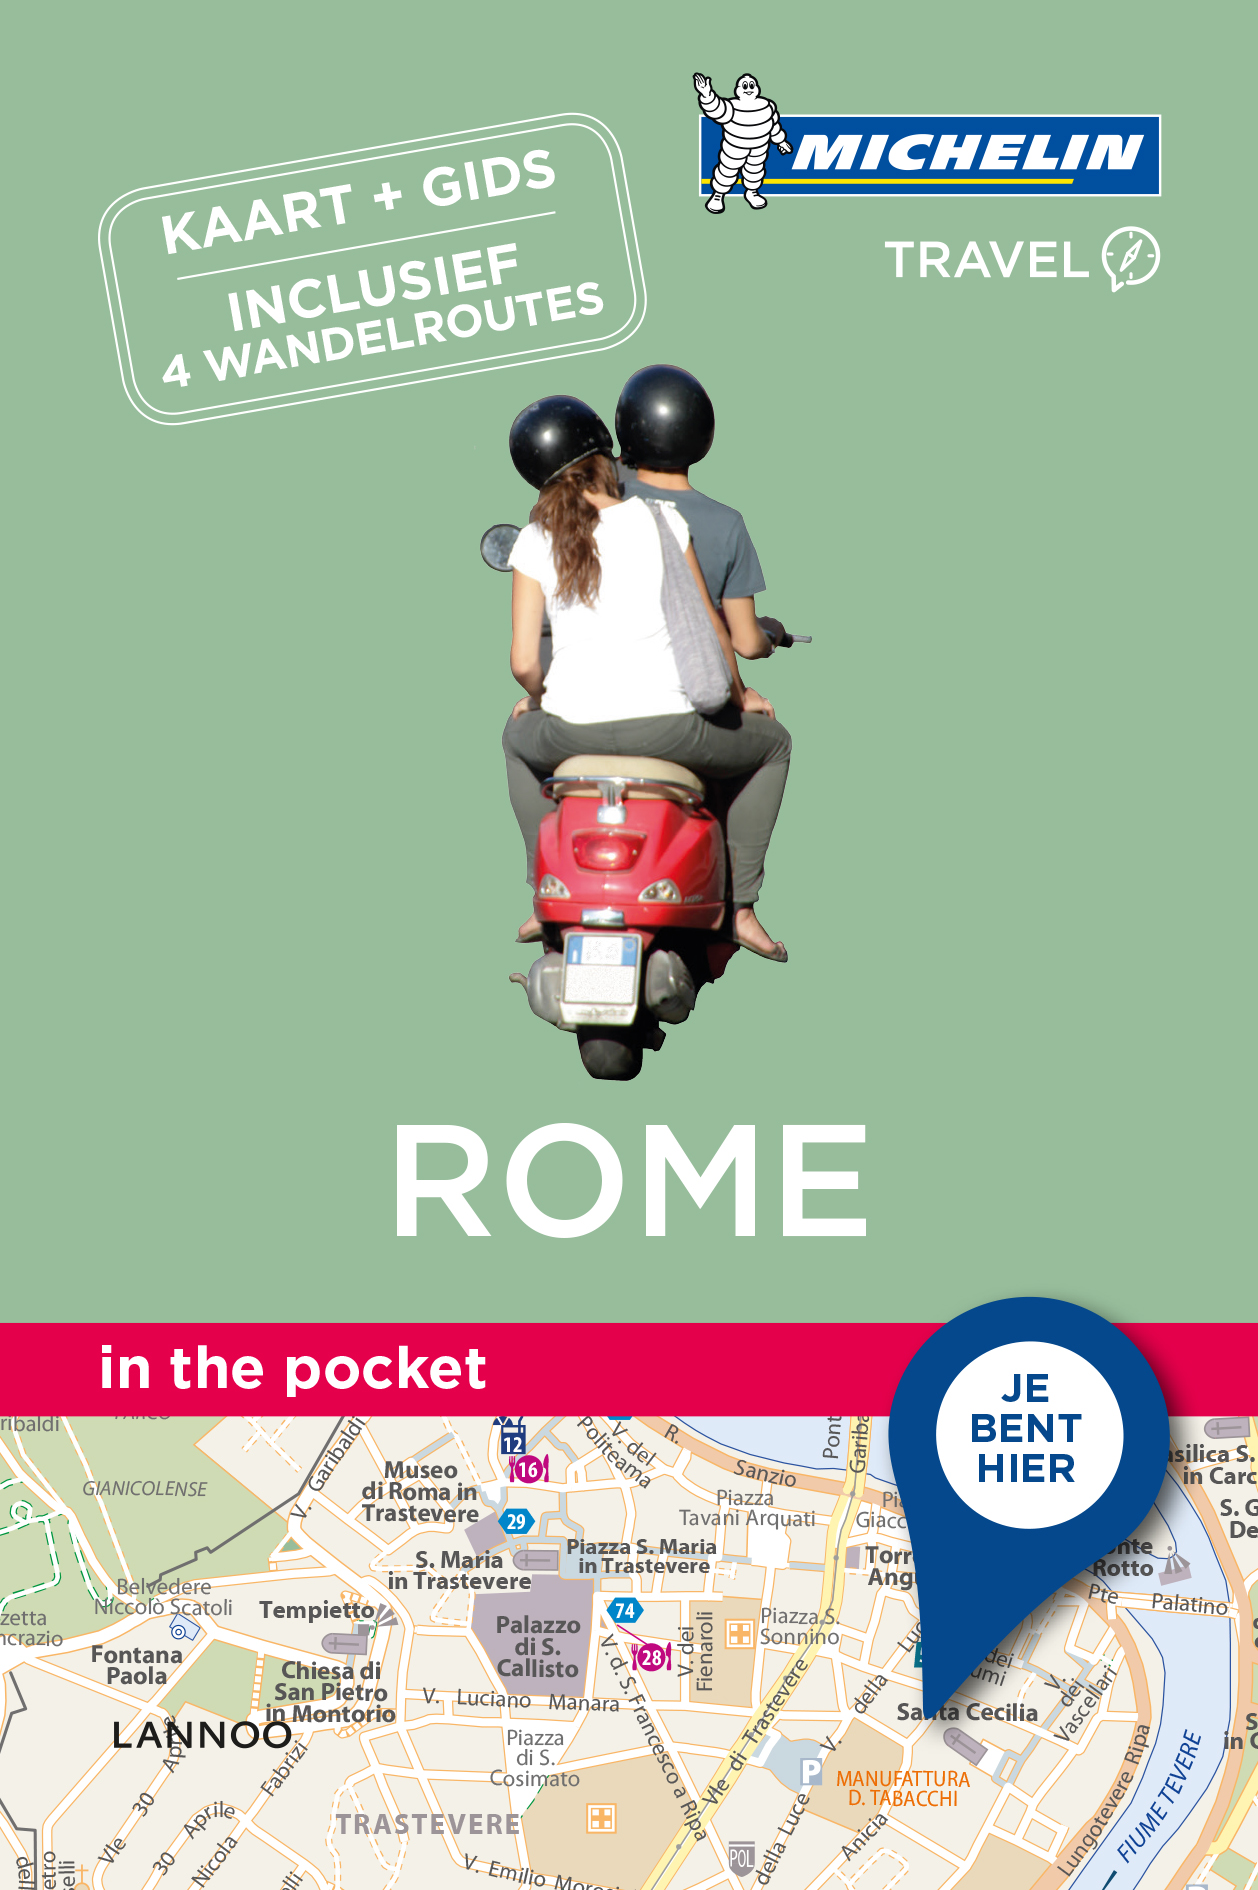 Michelin in the pocket: - Rome